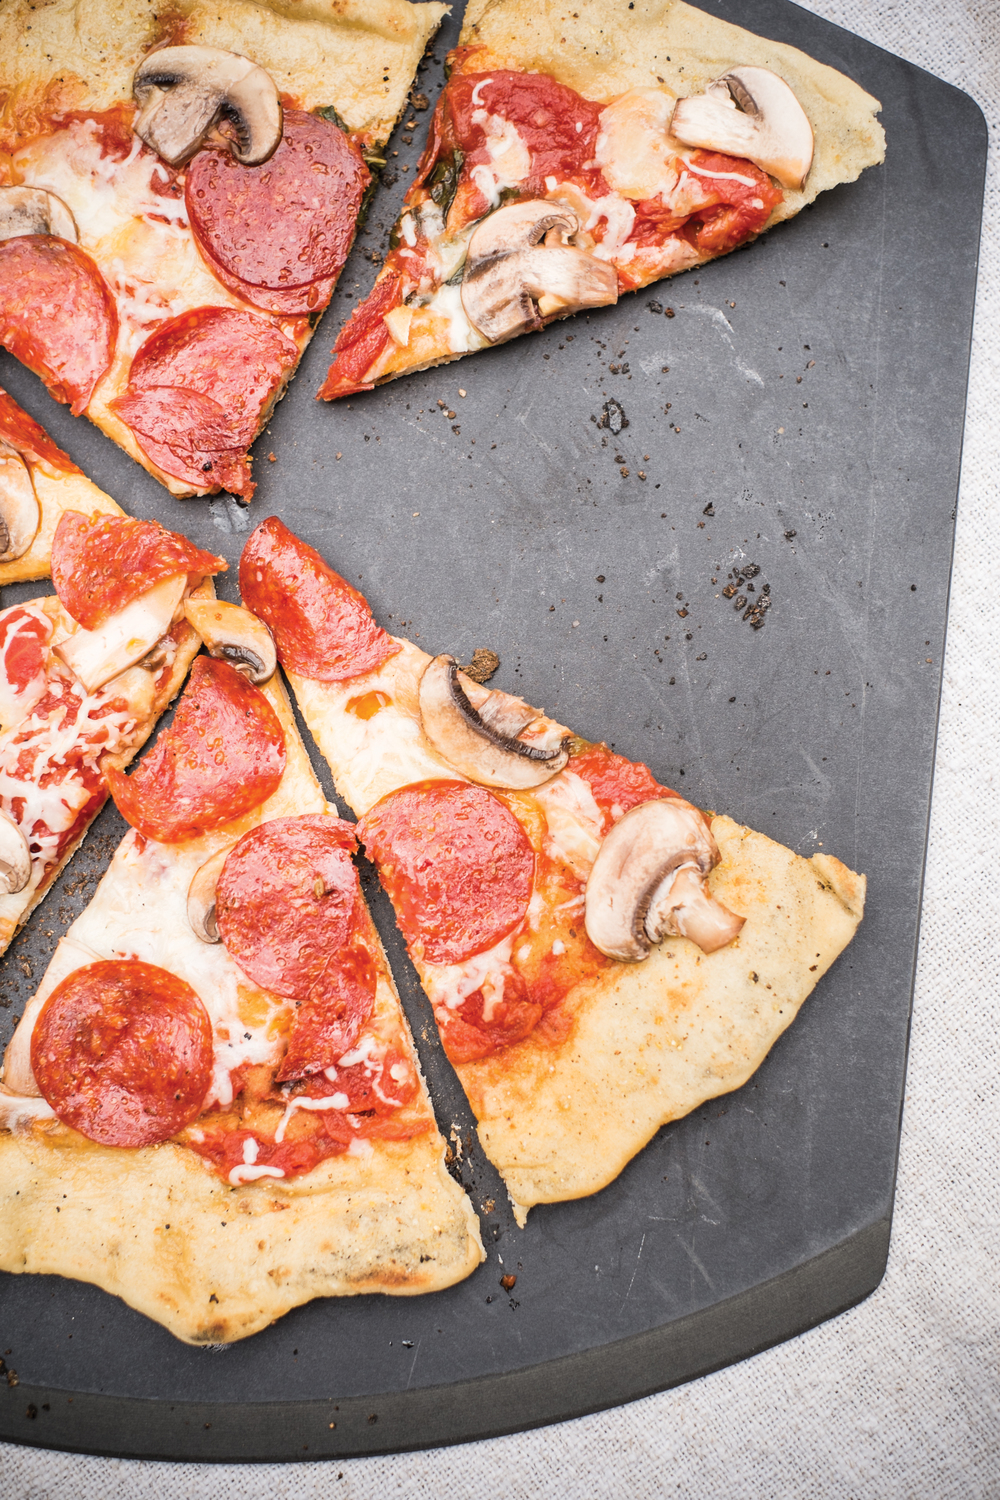 Classic Grilled Pepperoni and Mushroom Pizza, Photo by Steve Legato